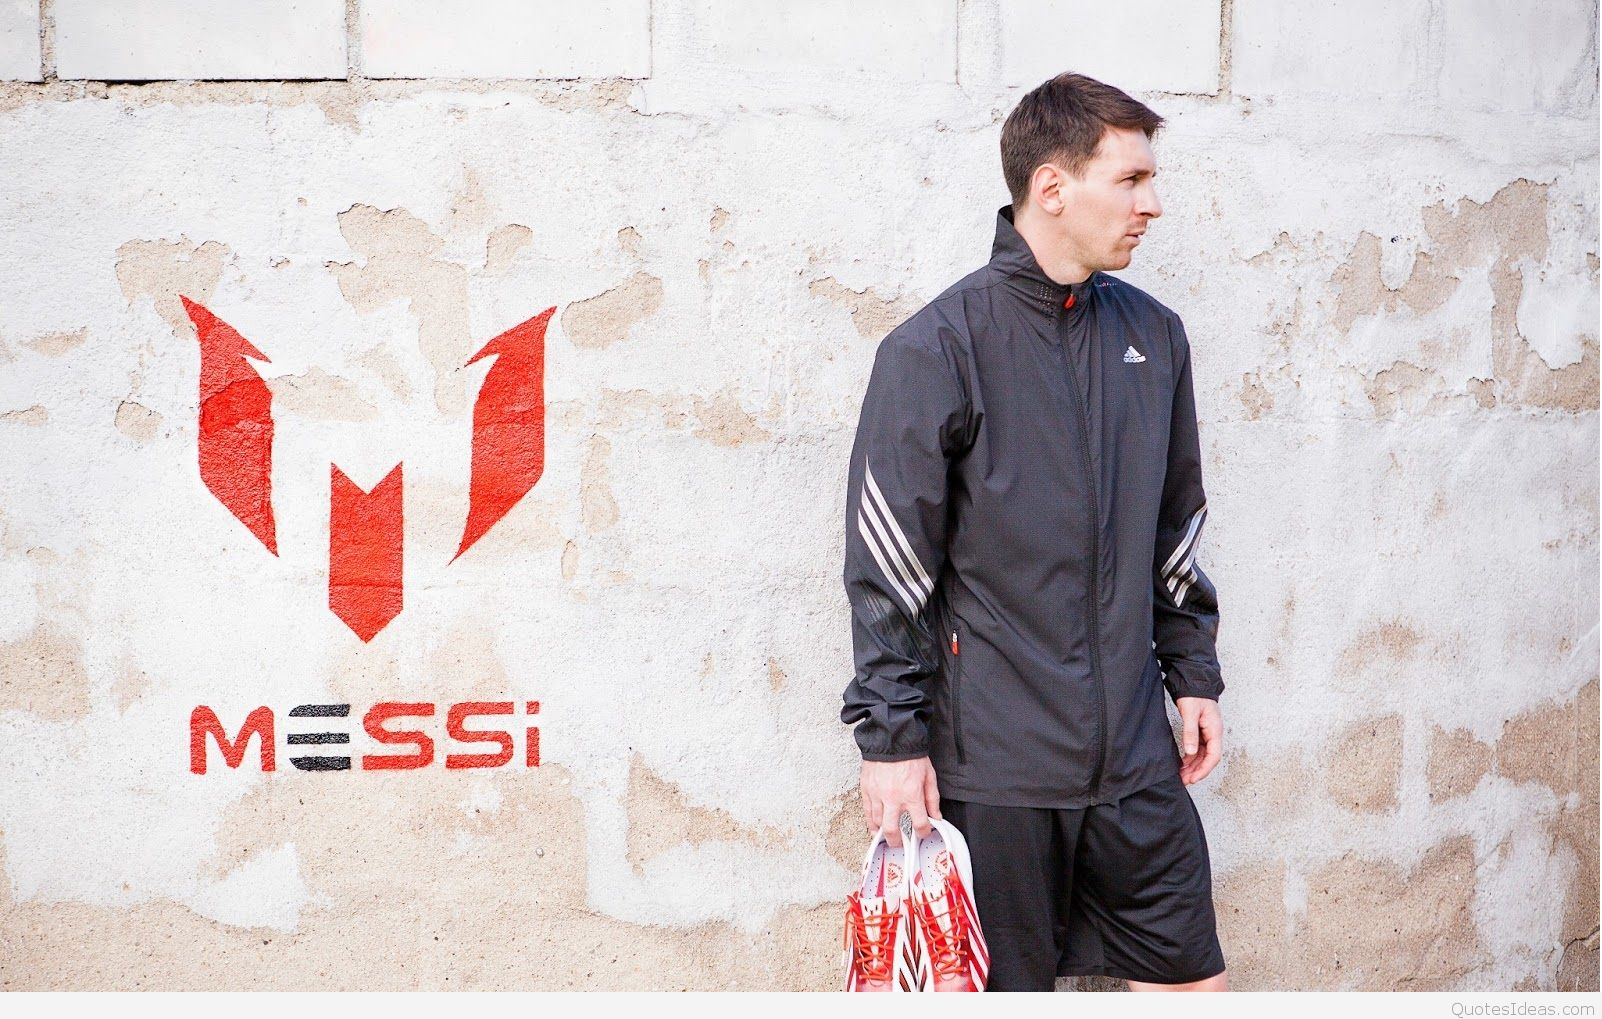 Messi wallpapers hd free download 4